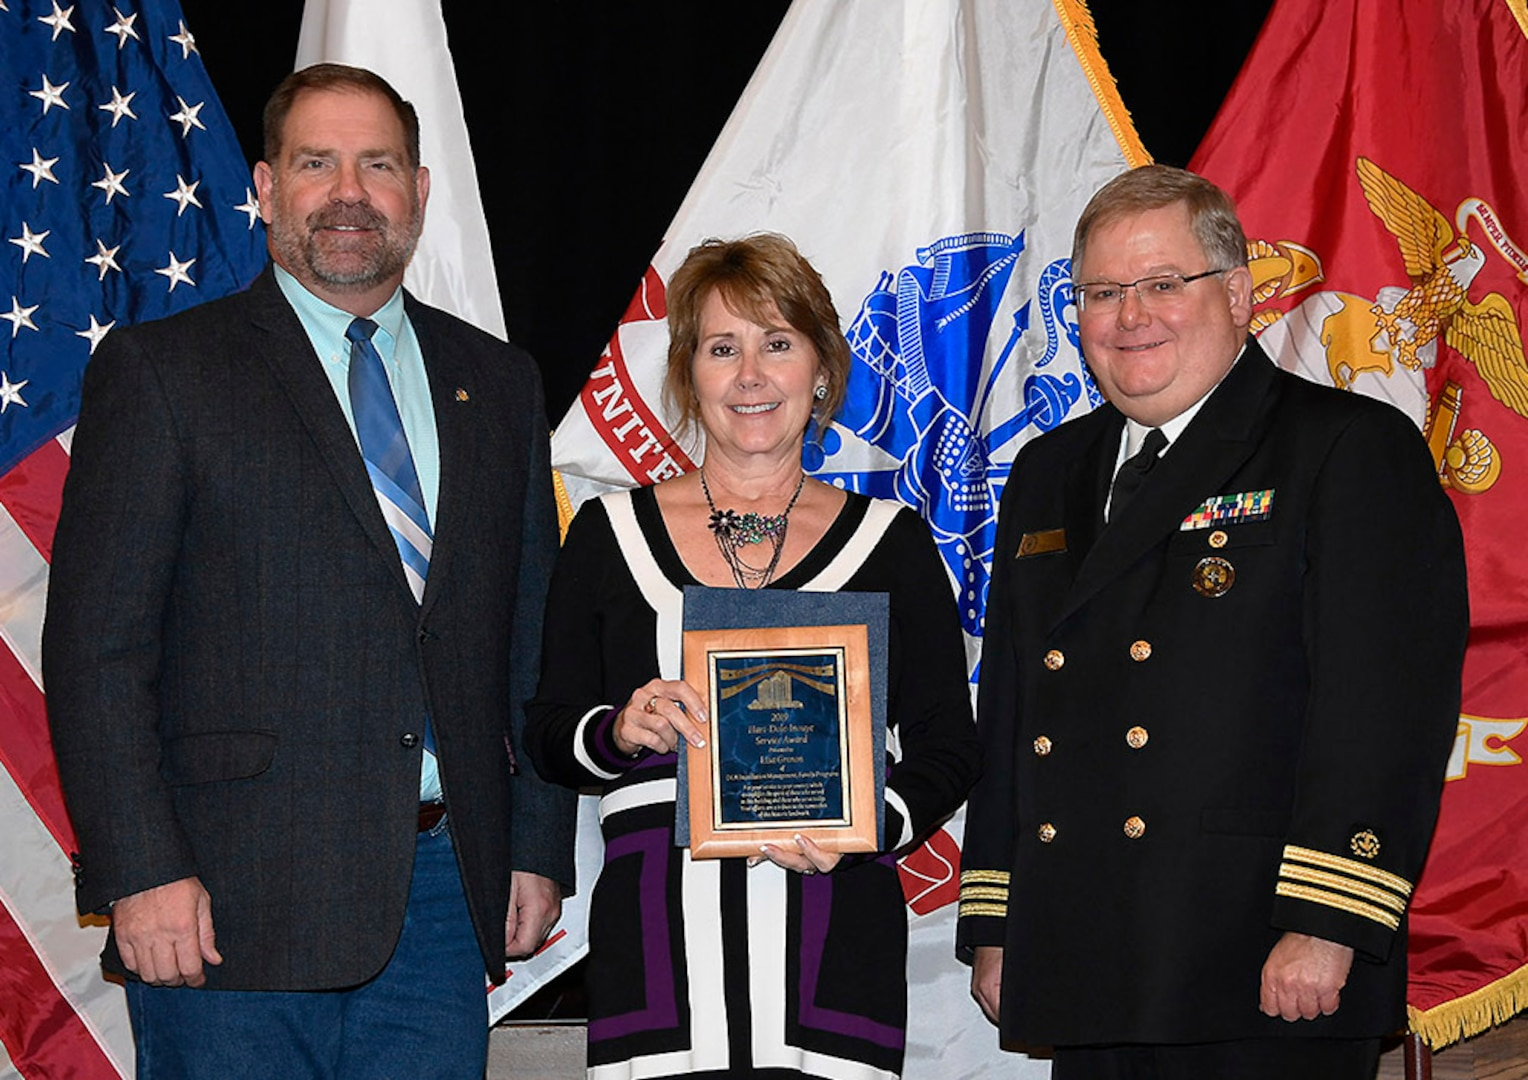 DLA Installation Management's Lisa Grenon (center) is awarded a 2019 Hart-Dole-Inouye Federal Center Service Award Nov. 8. Also pictured are DLA Disposition Services Director Mike Cannon and Battle Creek Military Affairs Committee Chairman T.R. Shaw, U.S. Navy, retired.